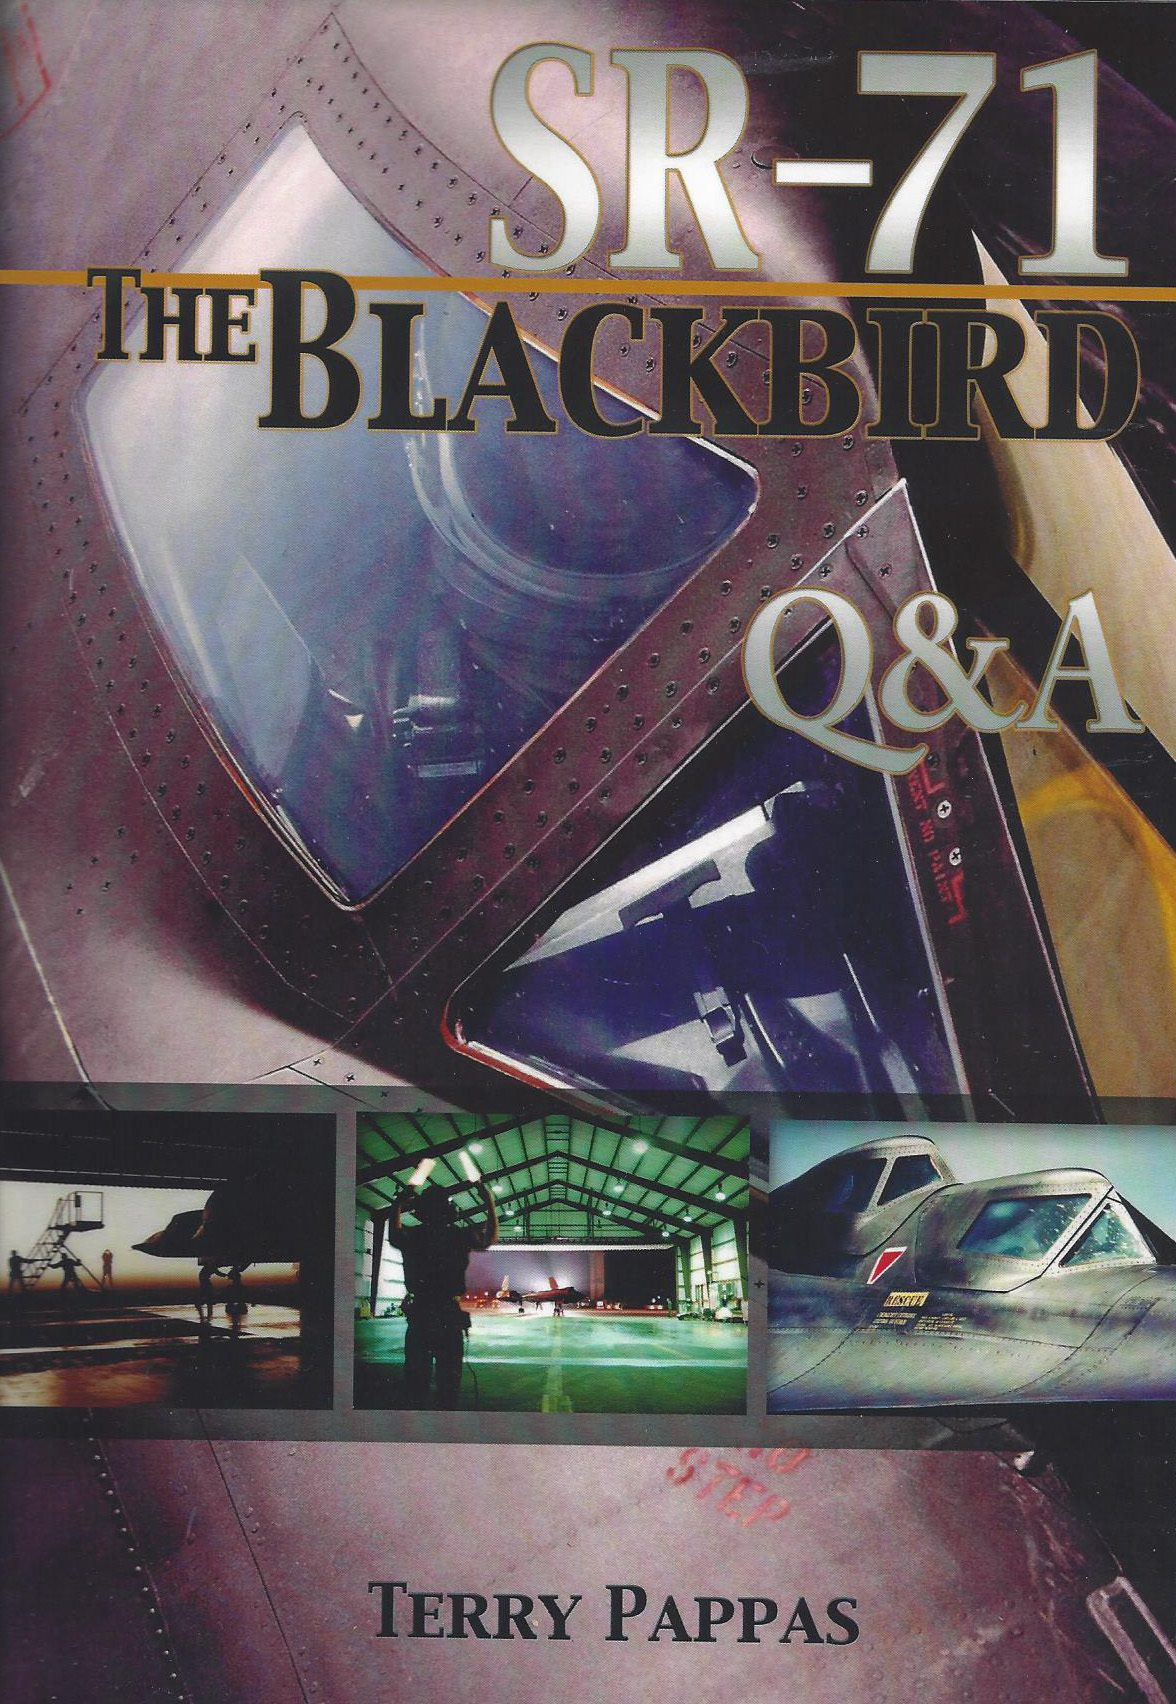 Blackbird book cover scan